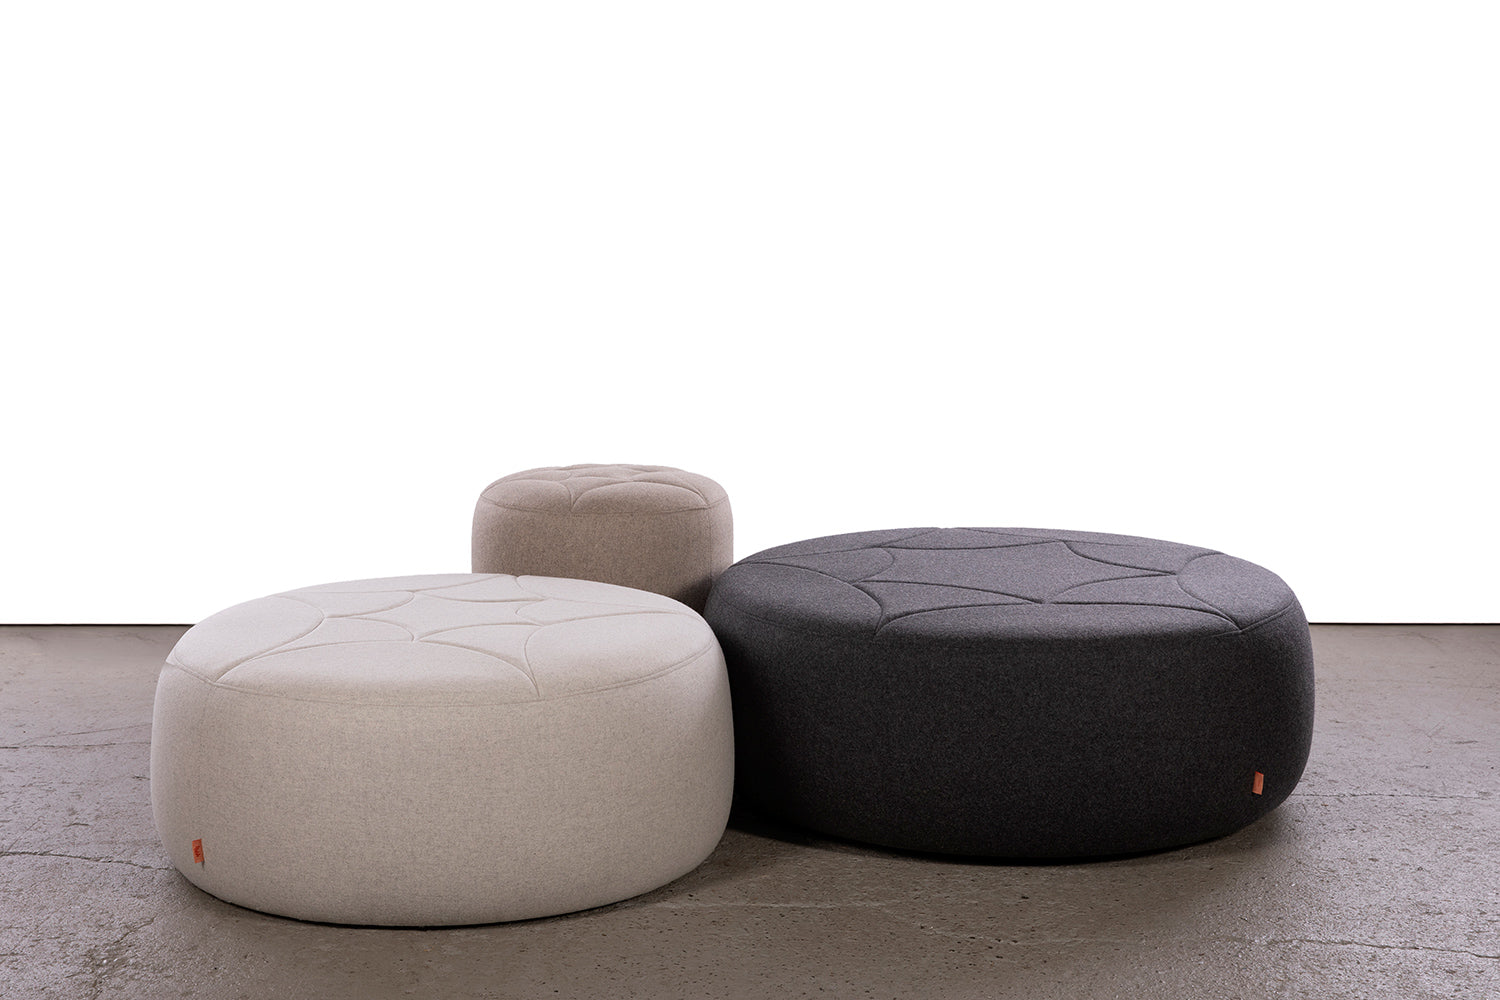 3's companee ottoman grouping, wool fabric